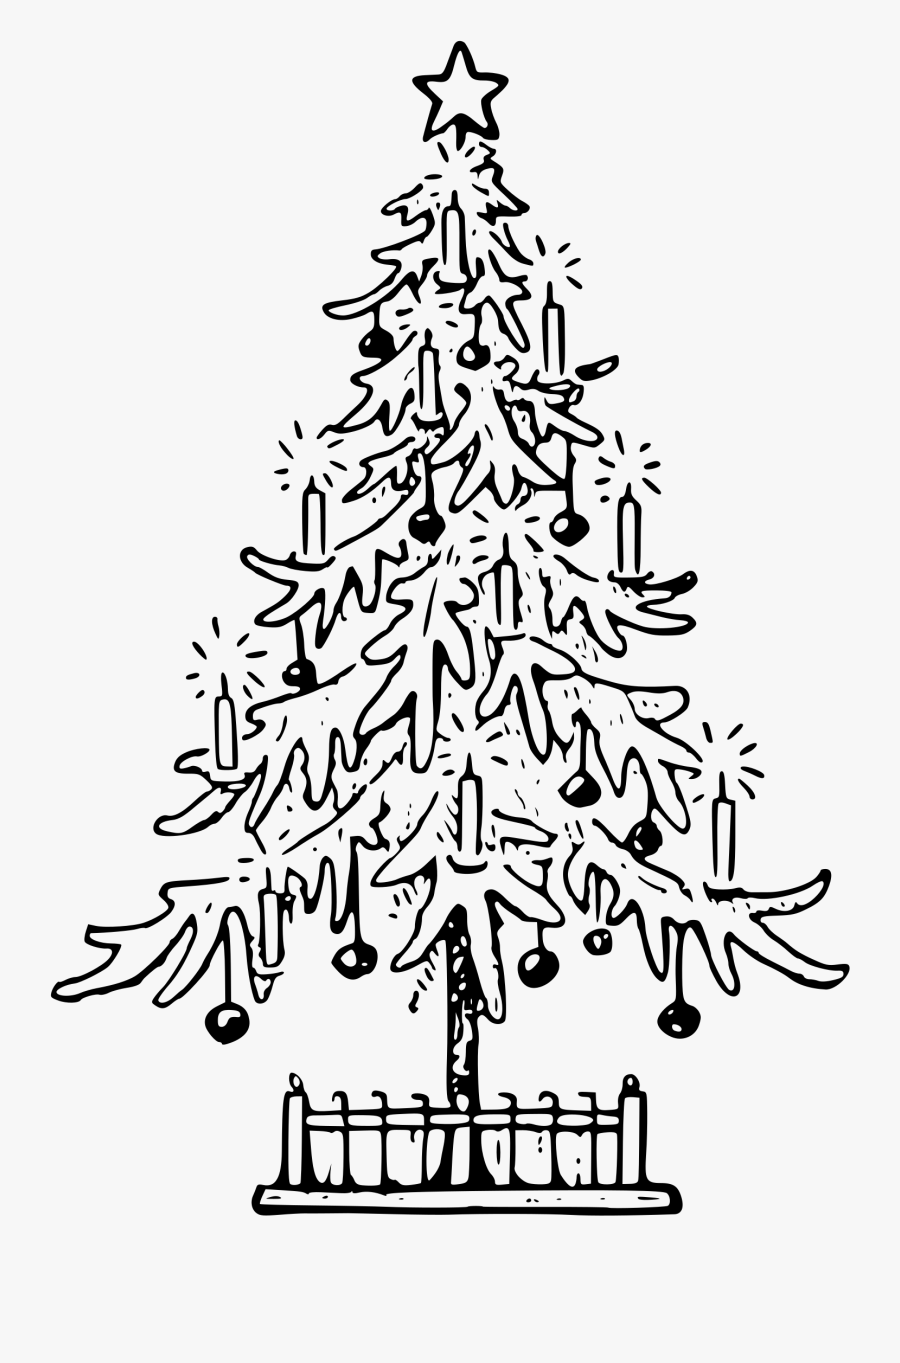 Exploit Christmas Tree Drawing Outline Clipart Lutz - Christmas Tree Drawing Png, Transparent Clipart